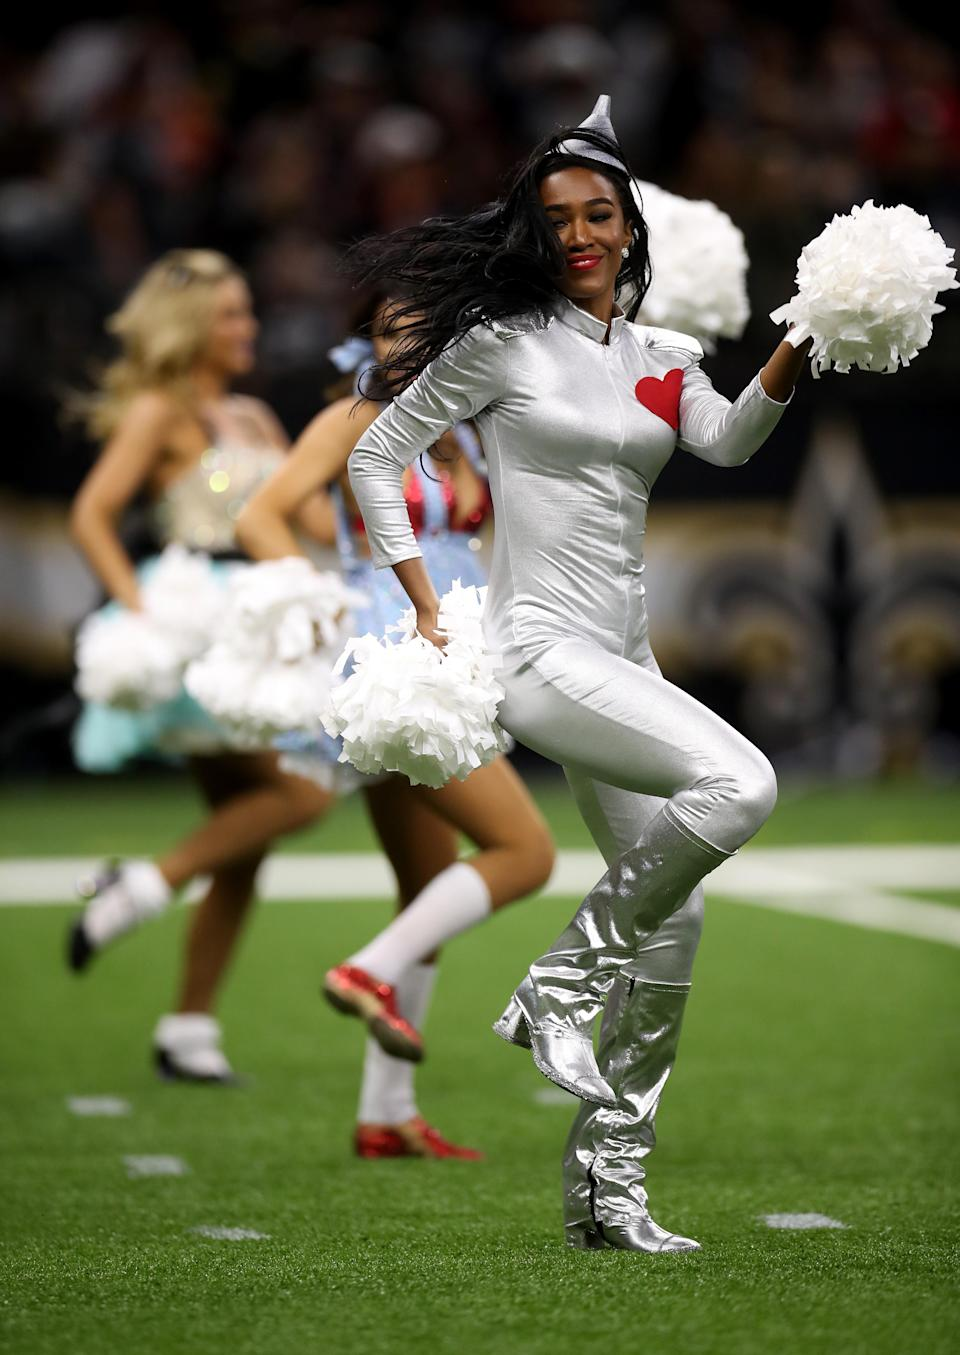 <p>A New Orleans Saints cheerleader performs during a game against the Chicago Bears at the Mercedes-Benz Superdome on October 29, 2017 in New Orleans, Louisiana. (Photo by Chris Graythen/Getty Images) </p>